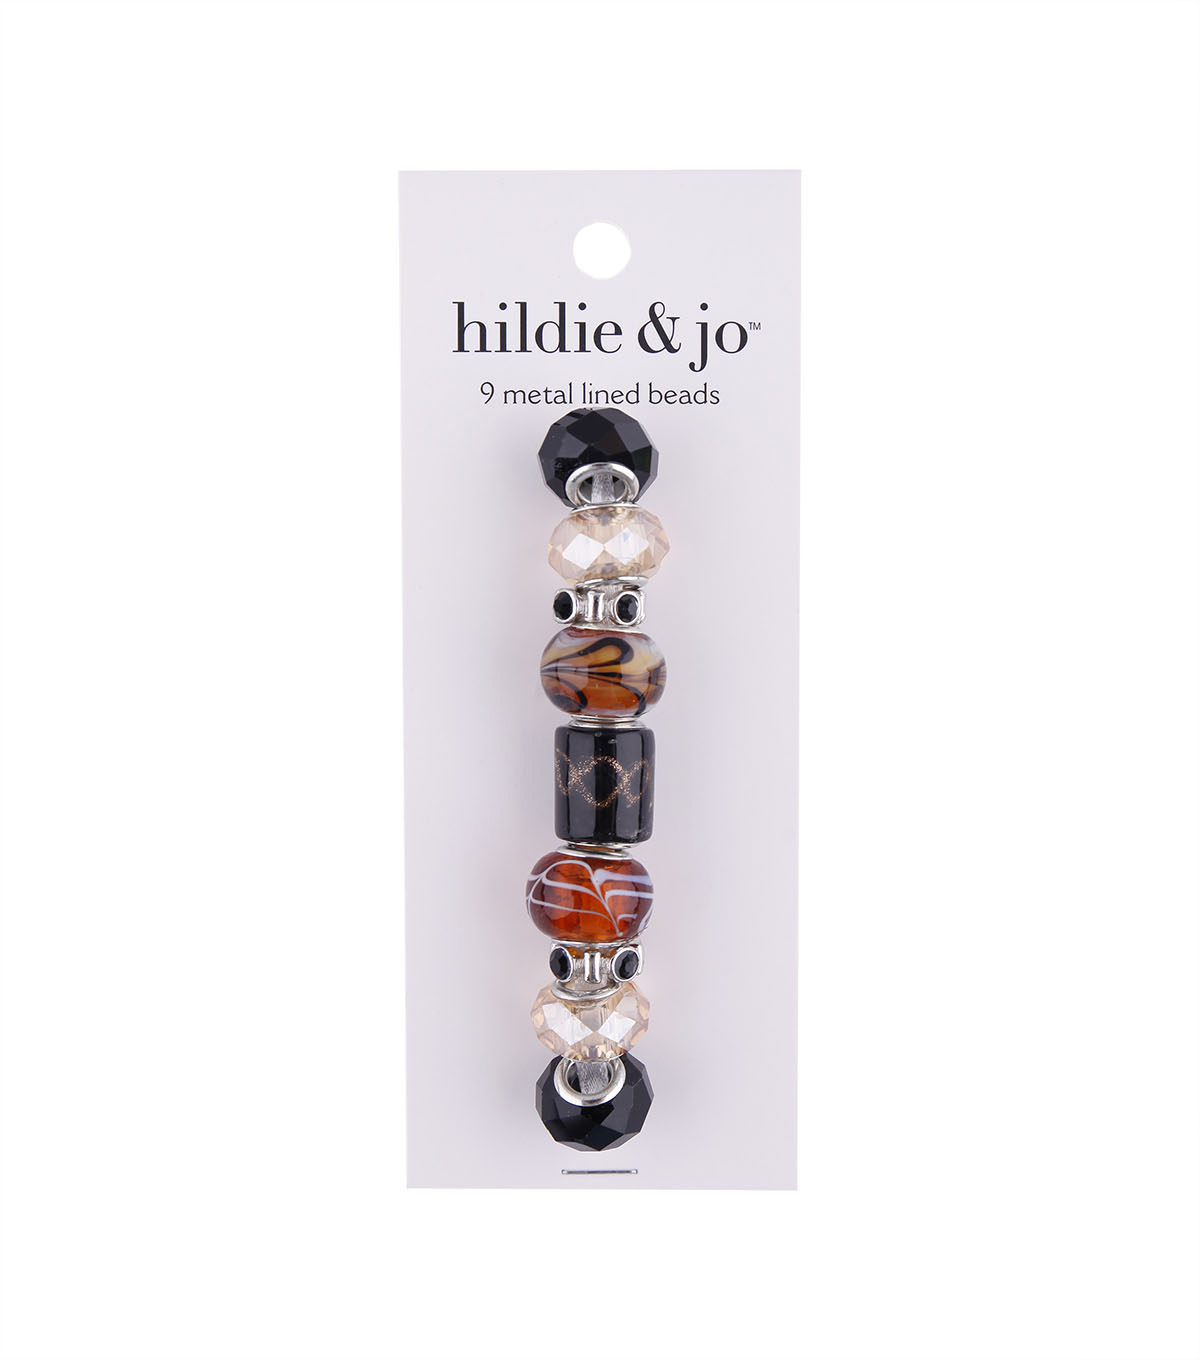 hildie & jo™ 9 Pack Metal Lined Glass Beads-Black & Brown